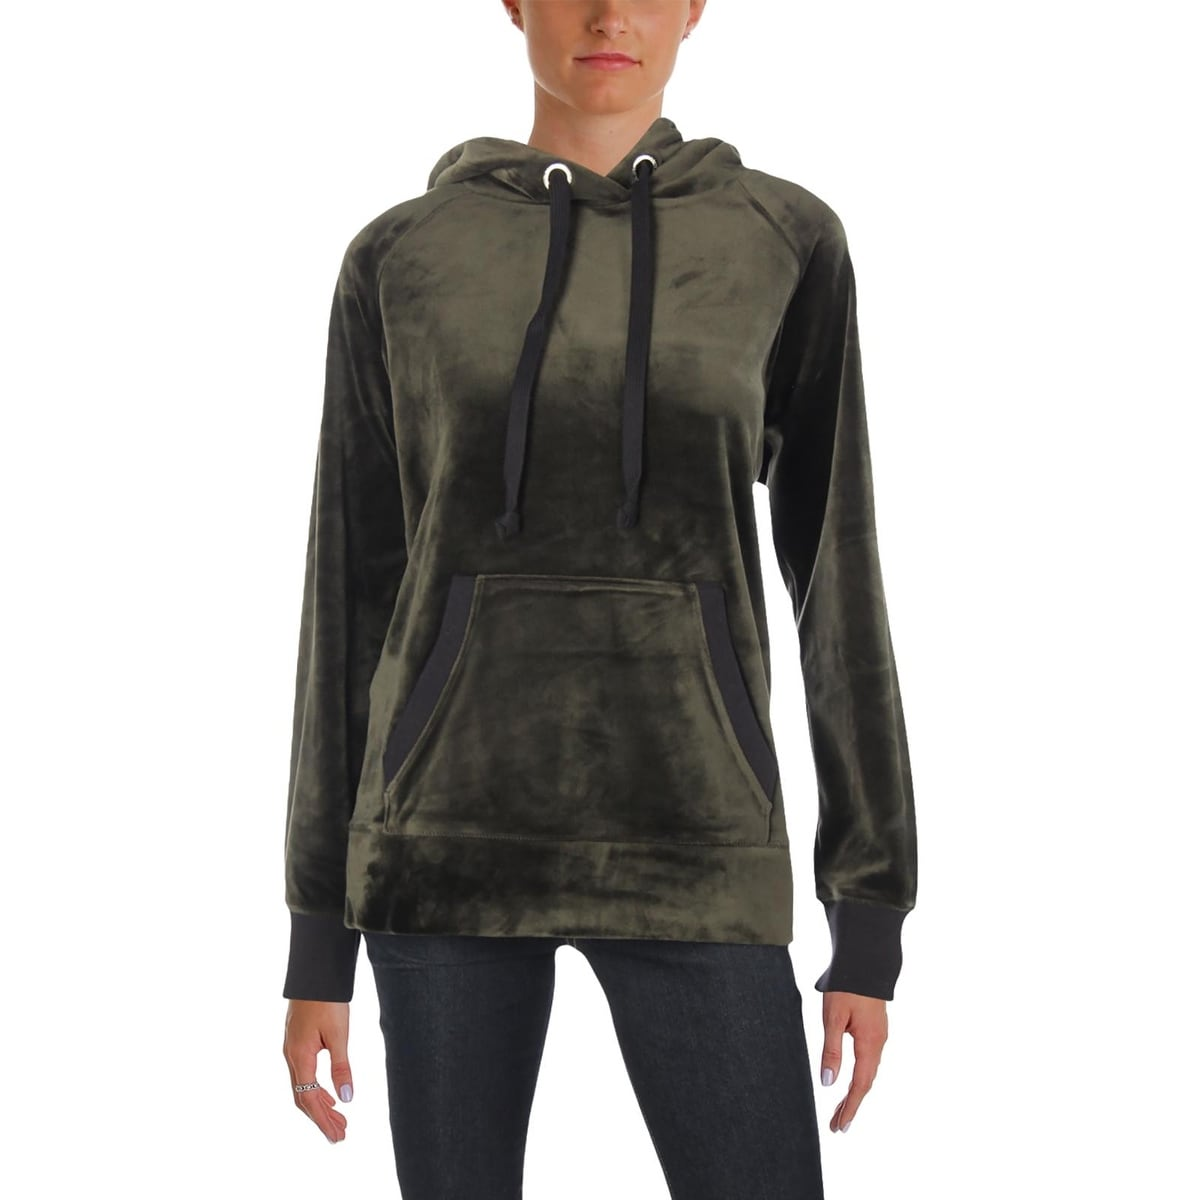 e66e09c075b3 Shop Juicy Couture Black Label Womens Sweatshirt Velour Hooded - Free  Shipping On Orders Over $45 - Overstock - 25448601